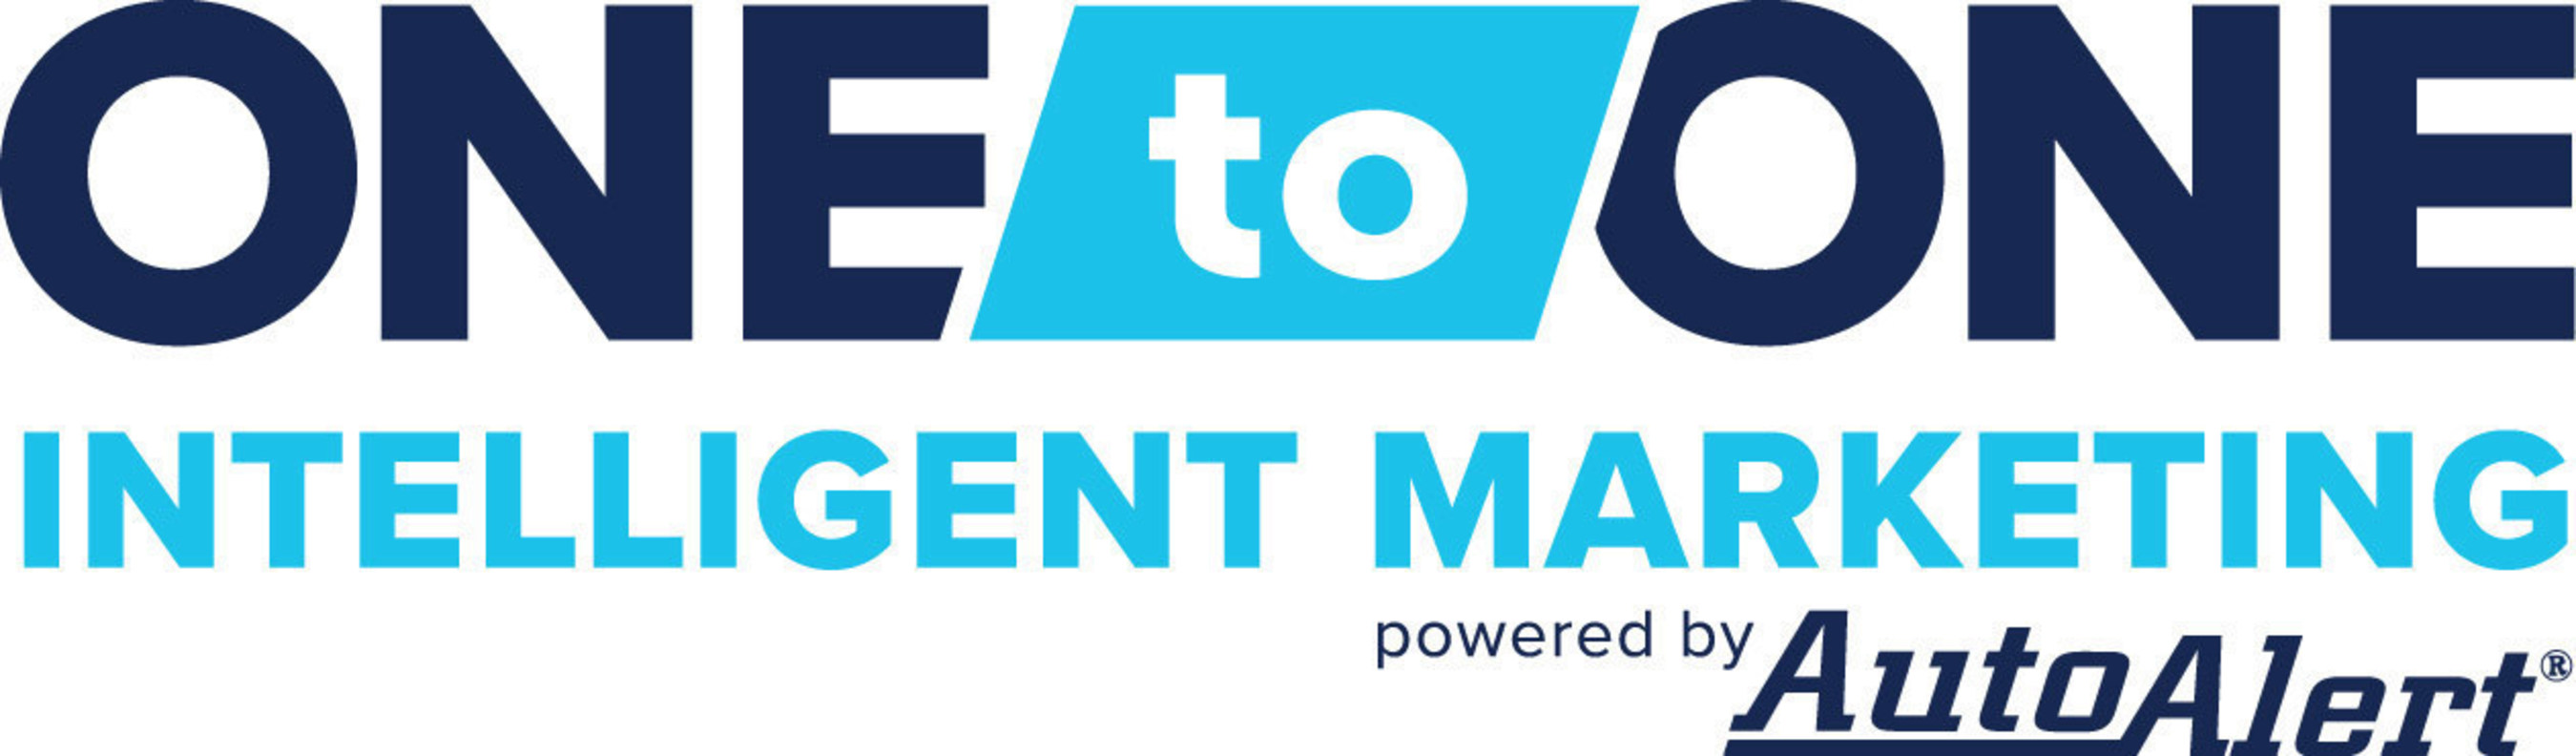 AutoAlert Announces One-to-One Intelligent Marketing Component